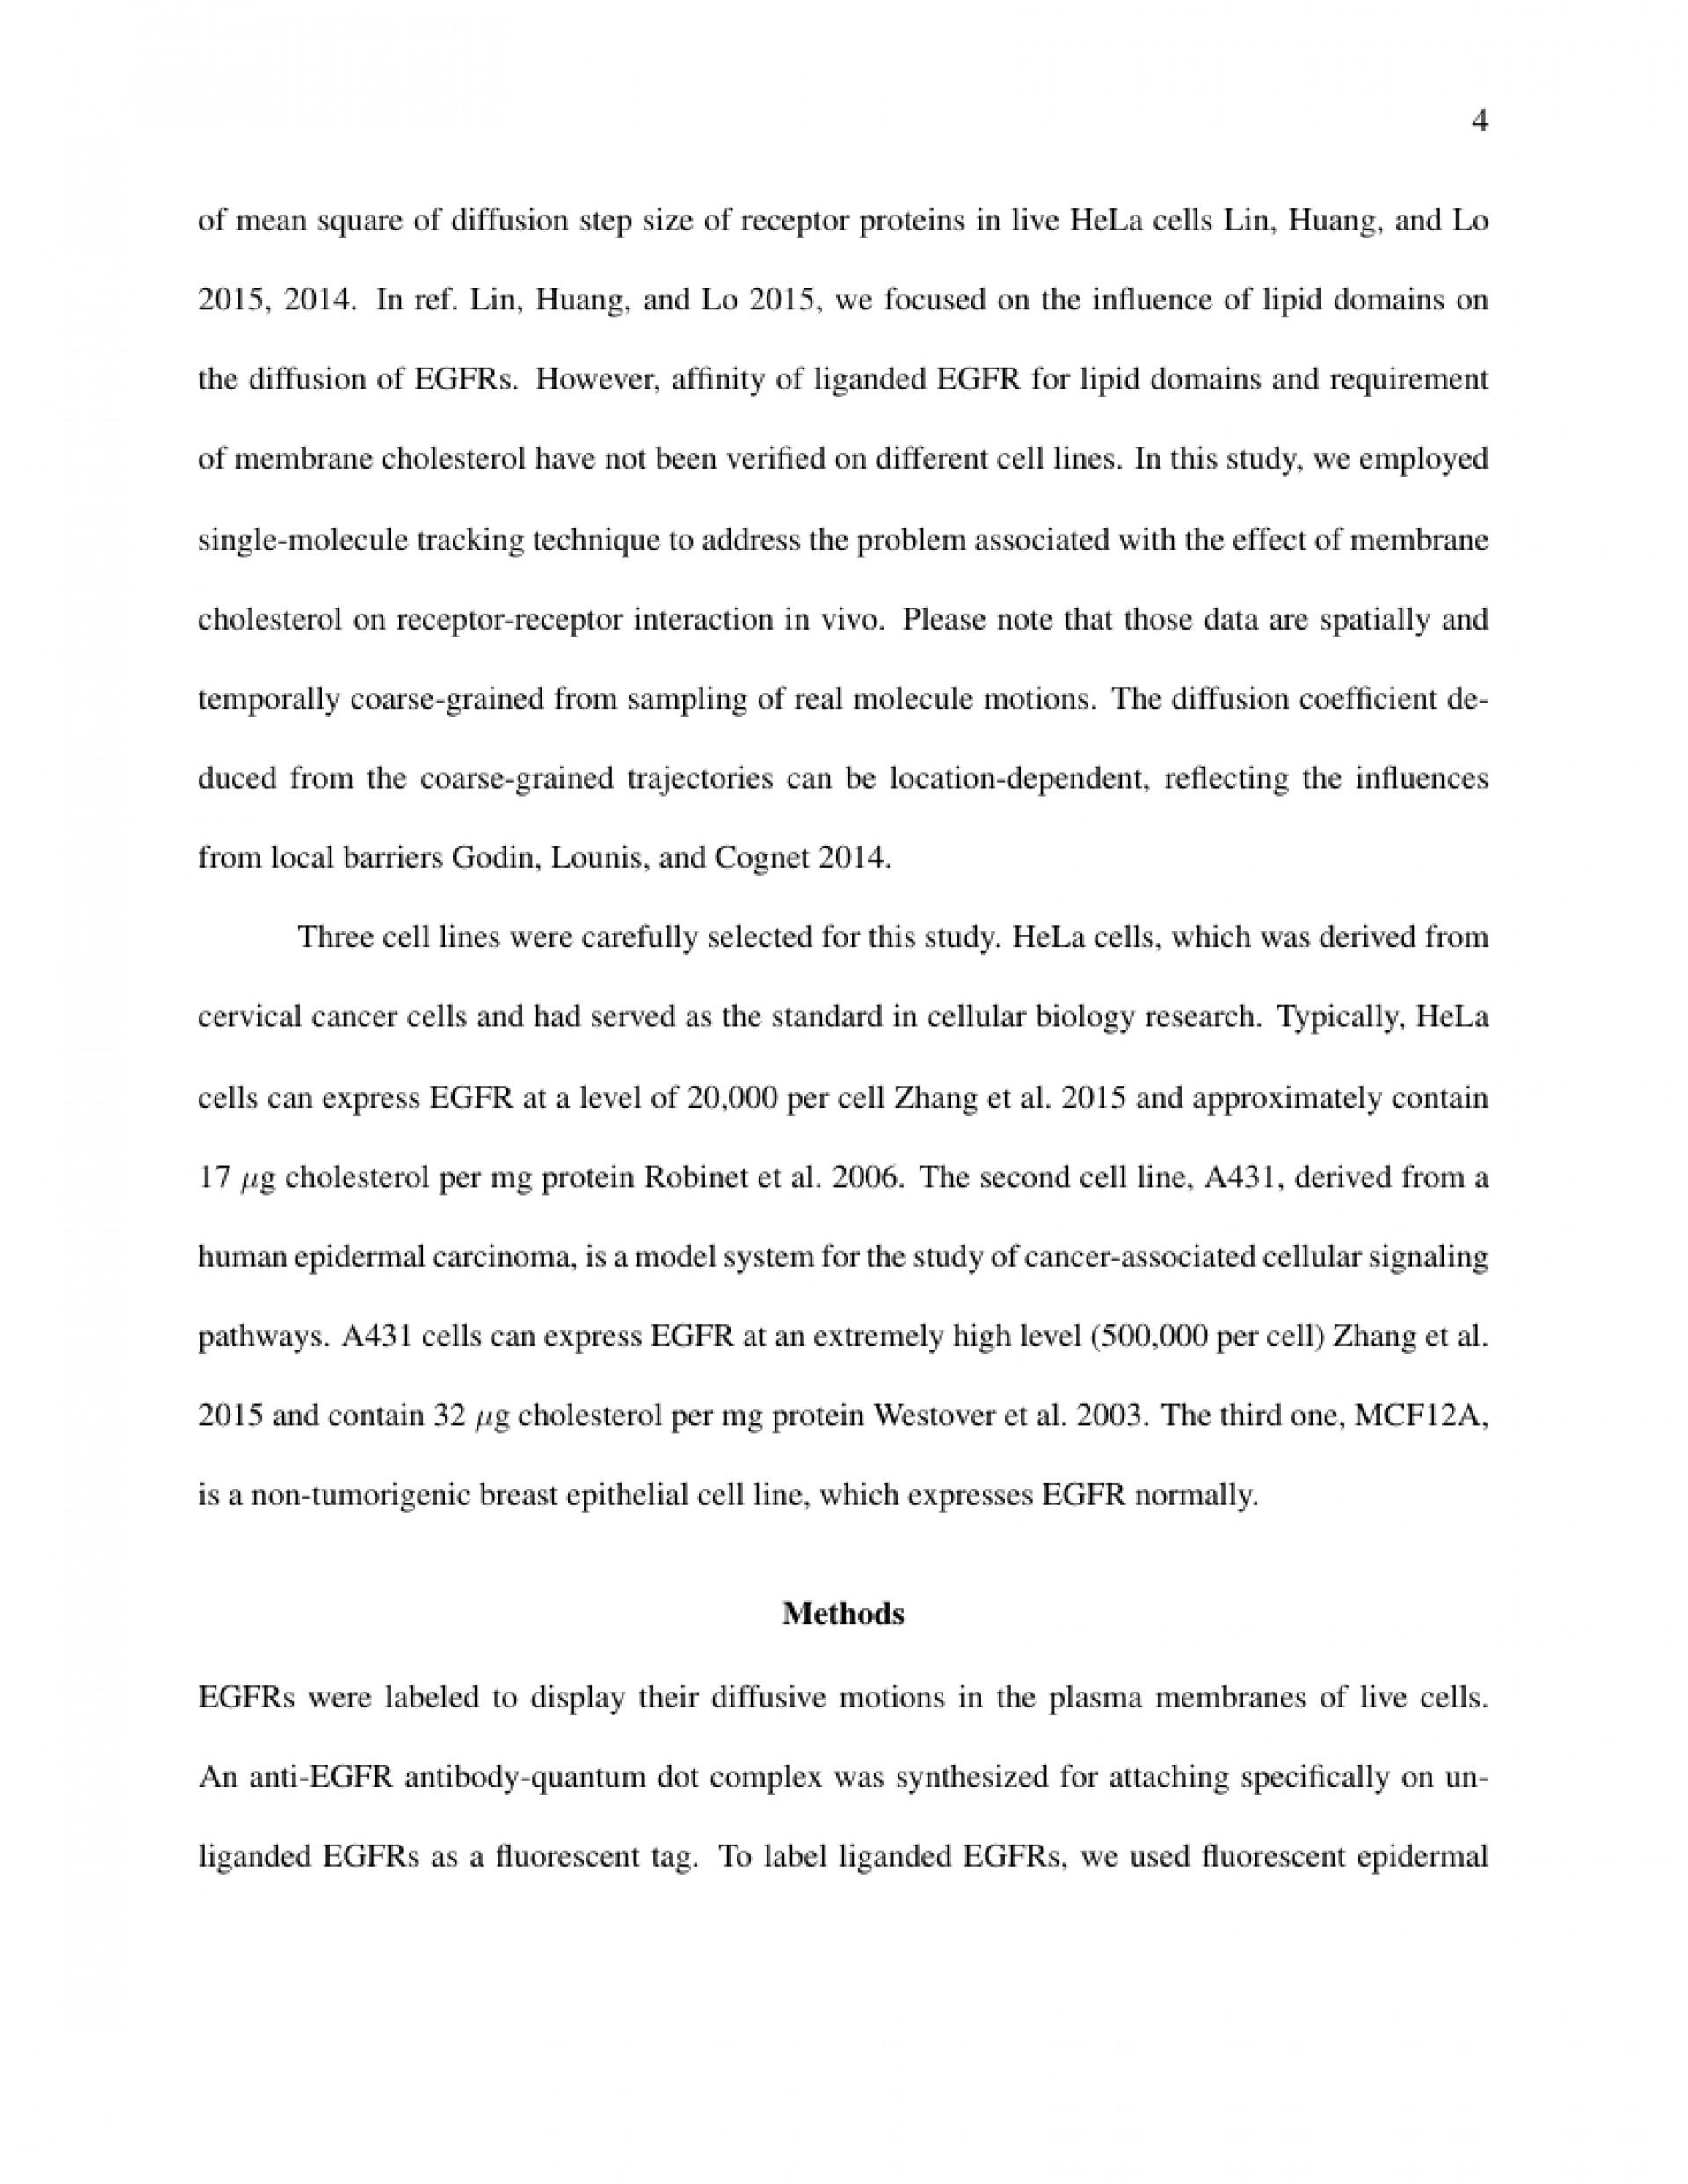 003 Format Of Research Paper Article Astounding A Introduction Example Using Apa Style Mla With Title Page 1920